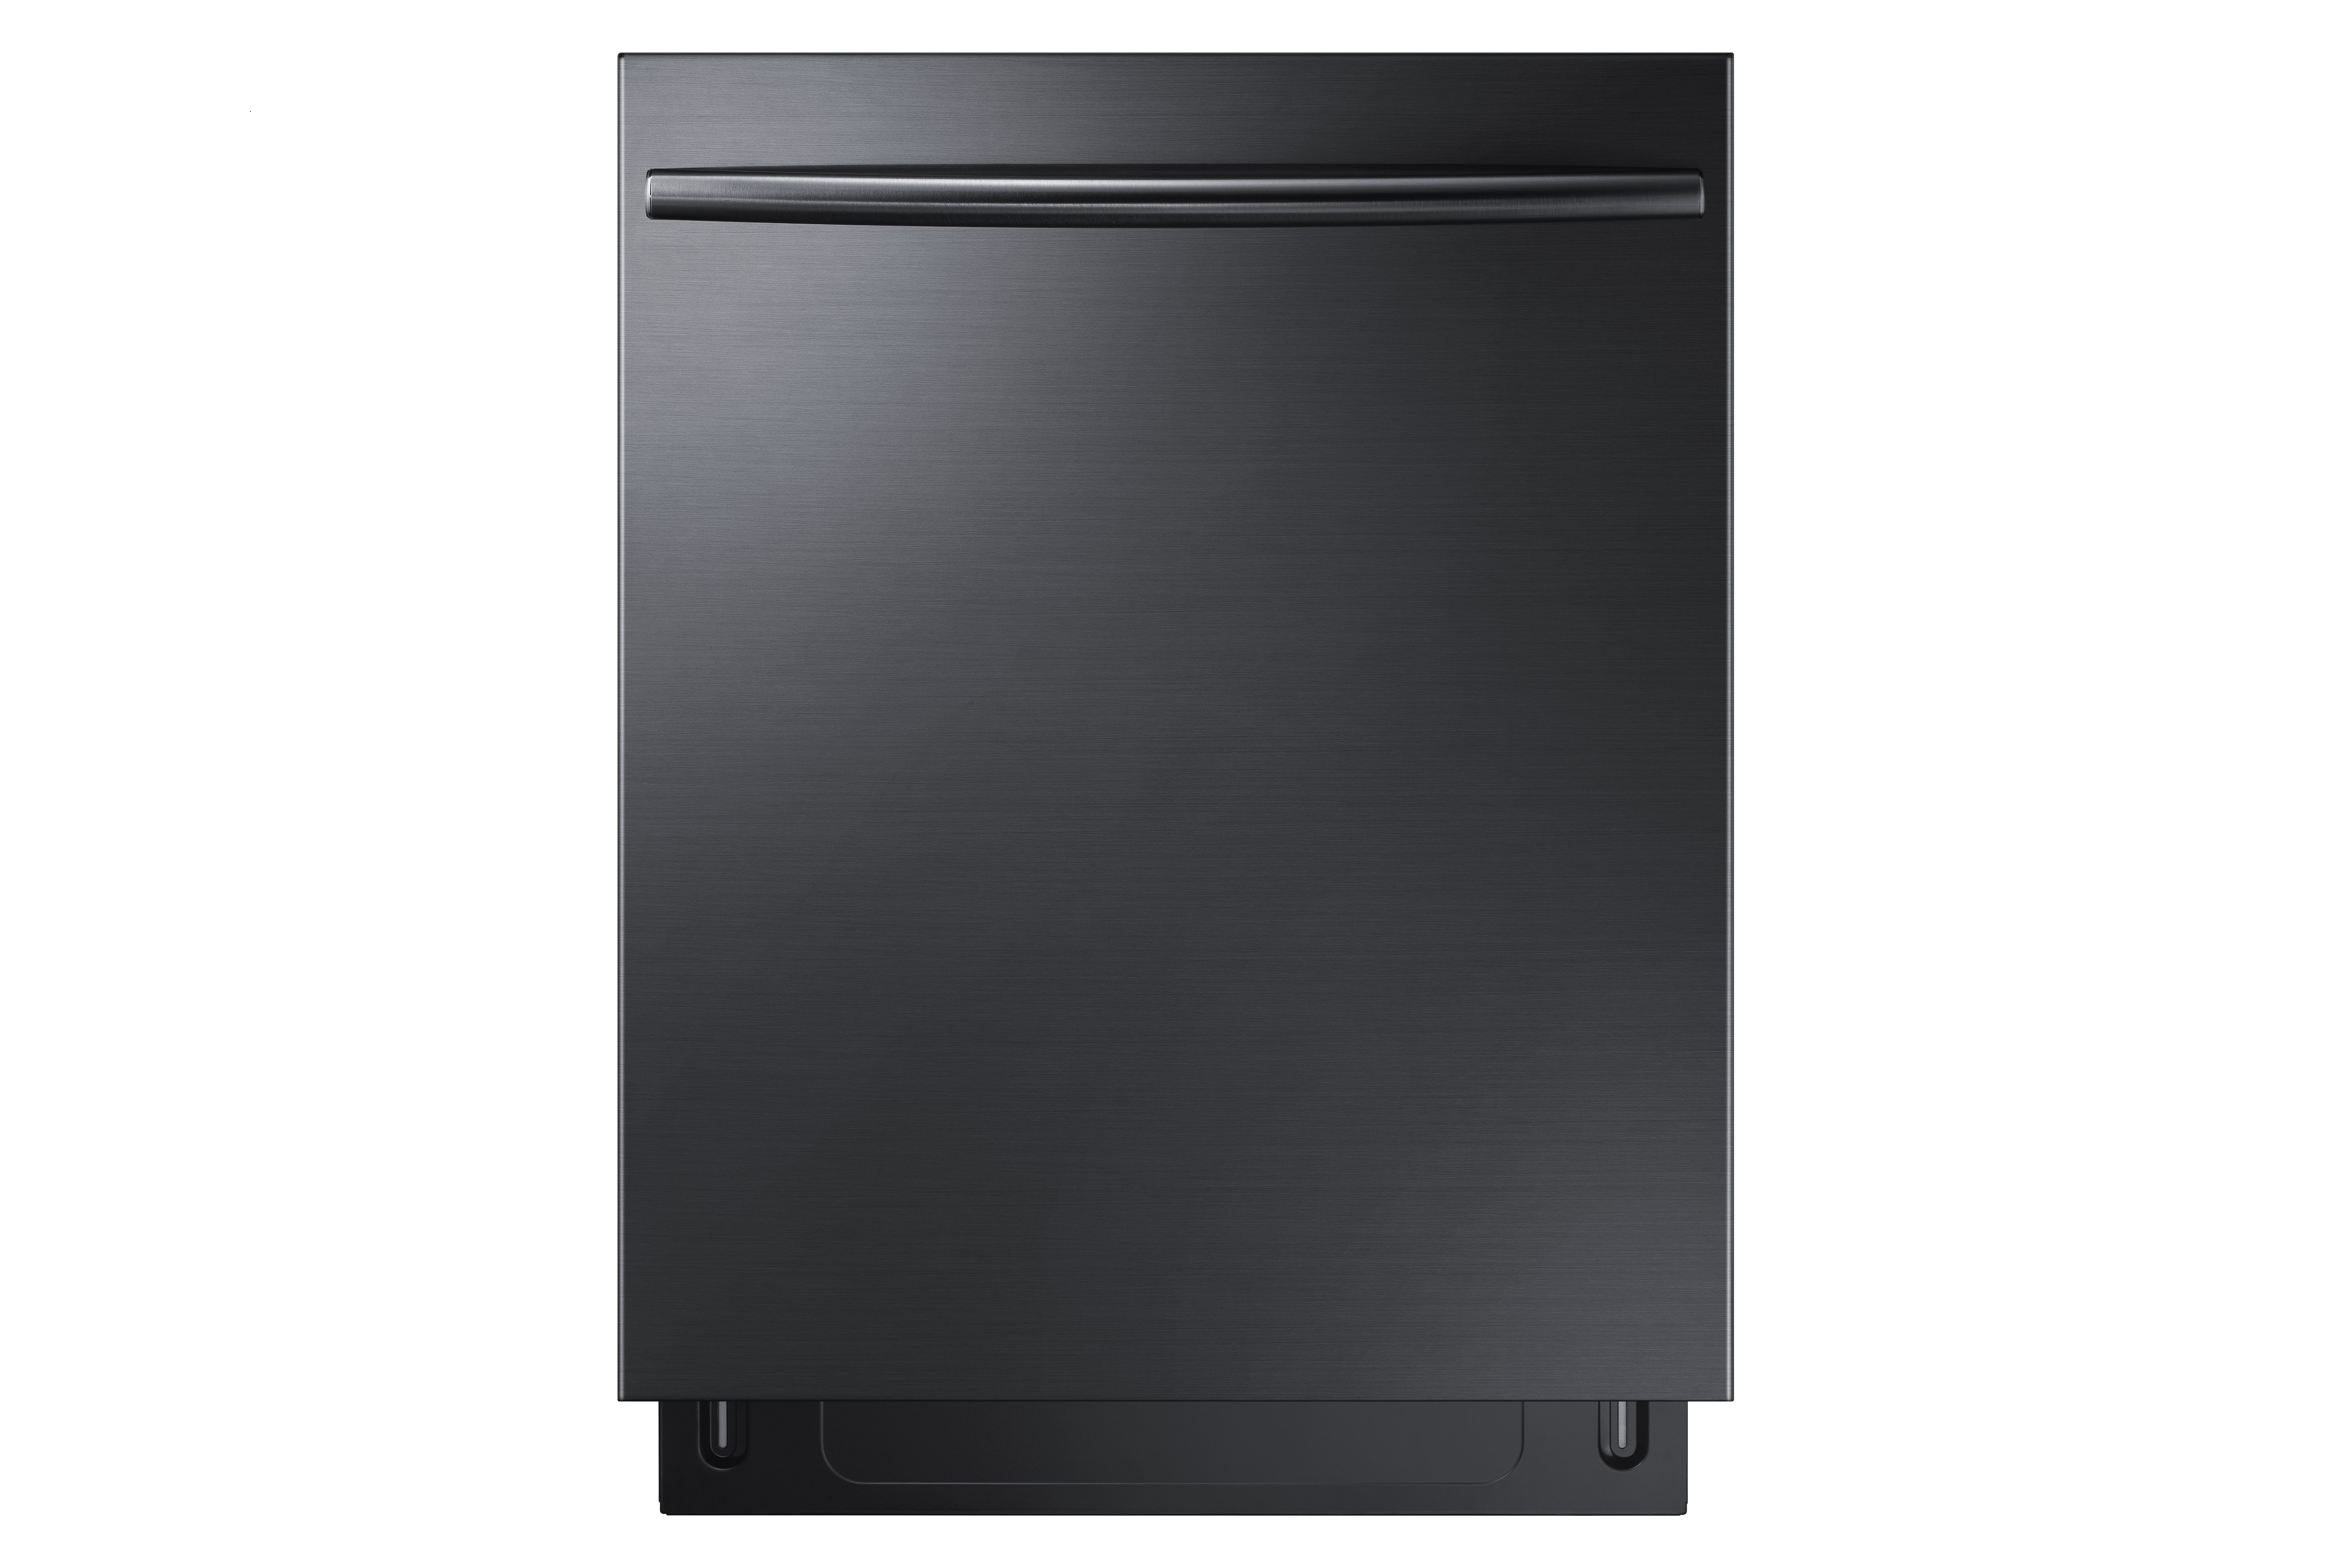 "Samsung DW80K7050UG/AA 24"""" Built-In Dishwasher with StormWash Black Stainless"